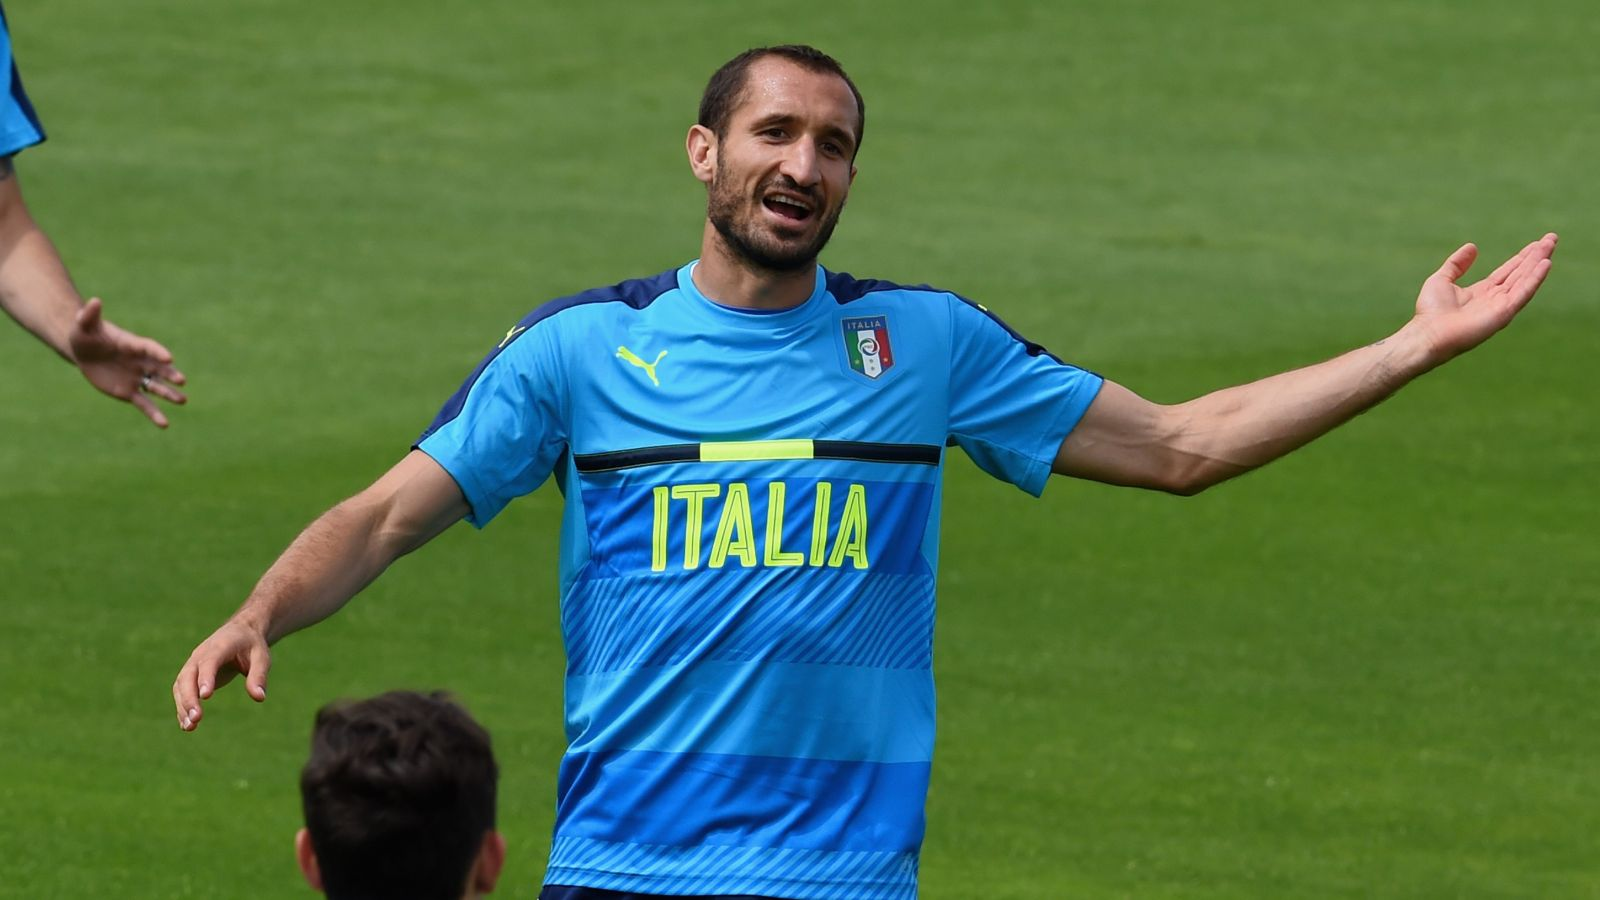 Sweden defender Ekdal says Chiellini can be 'a swine' on the pitch